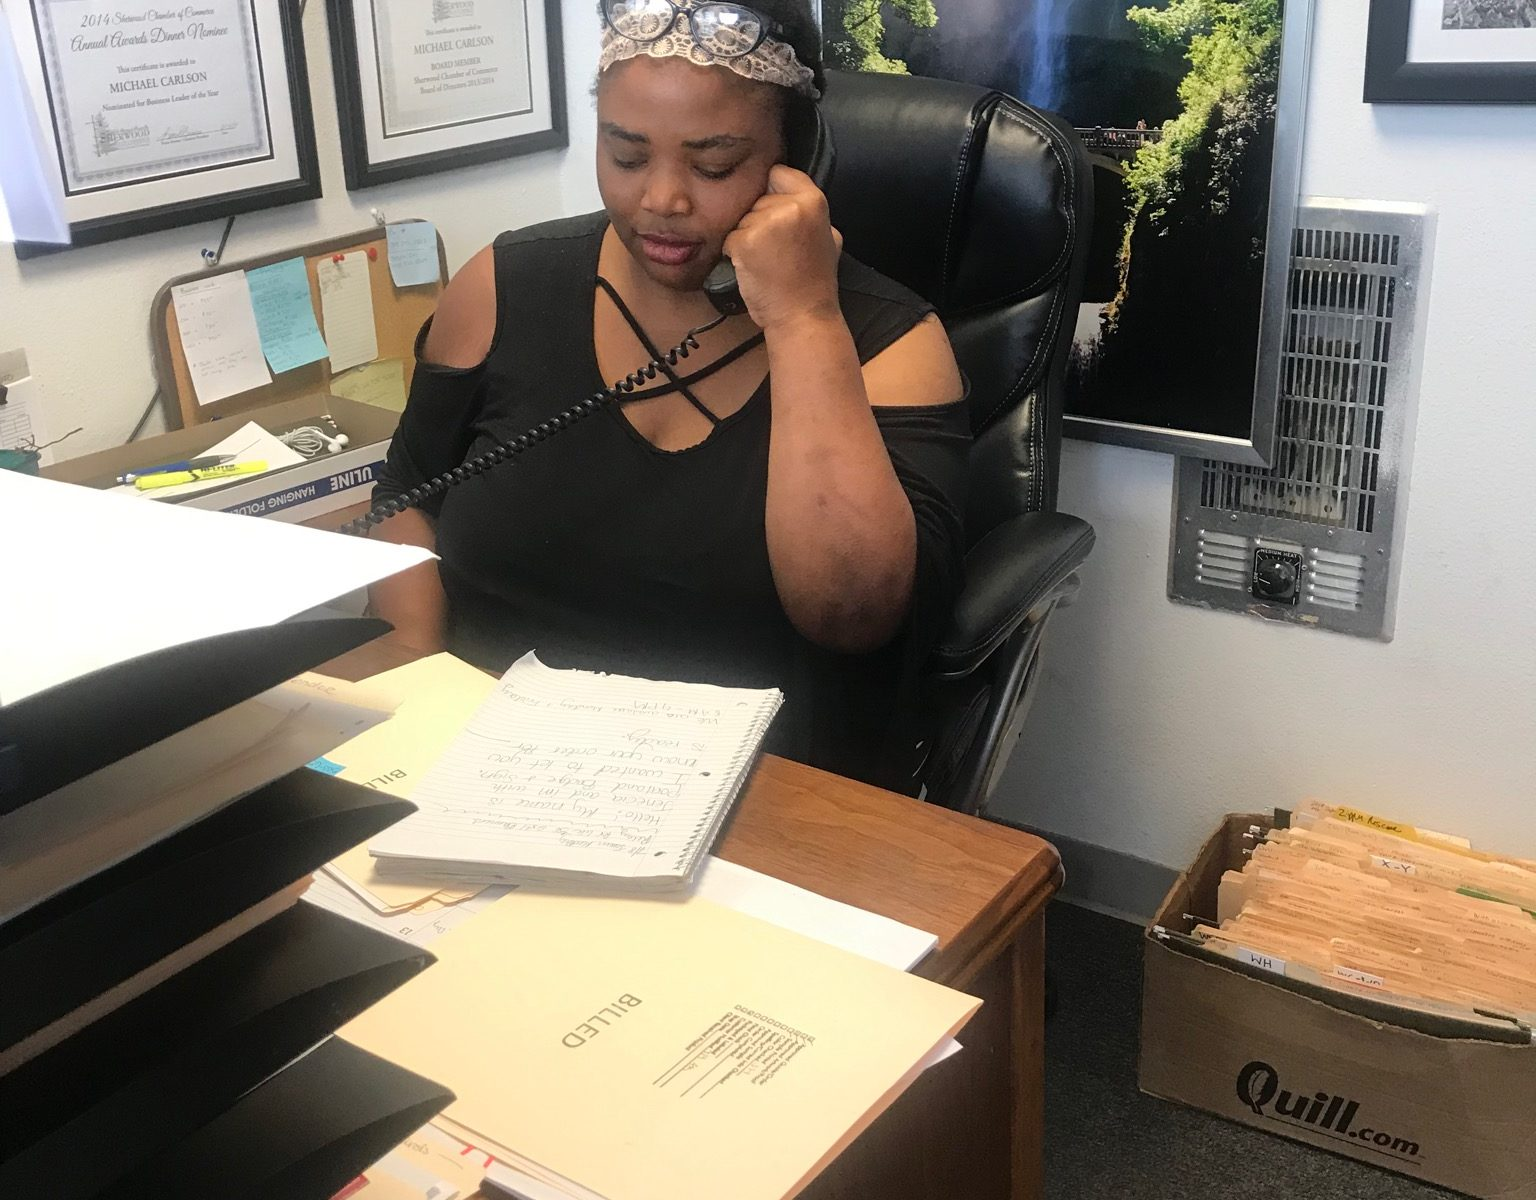 Jenecia Lawson, seated at a desk speaking on a corded phone.